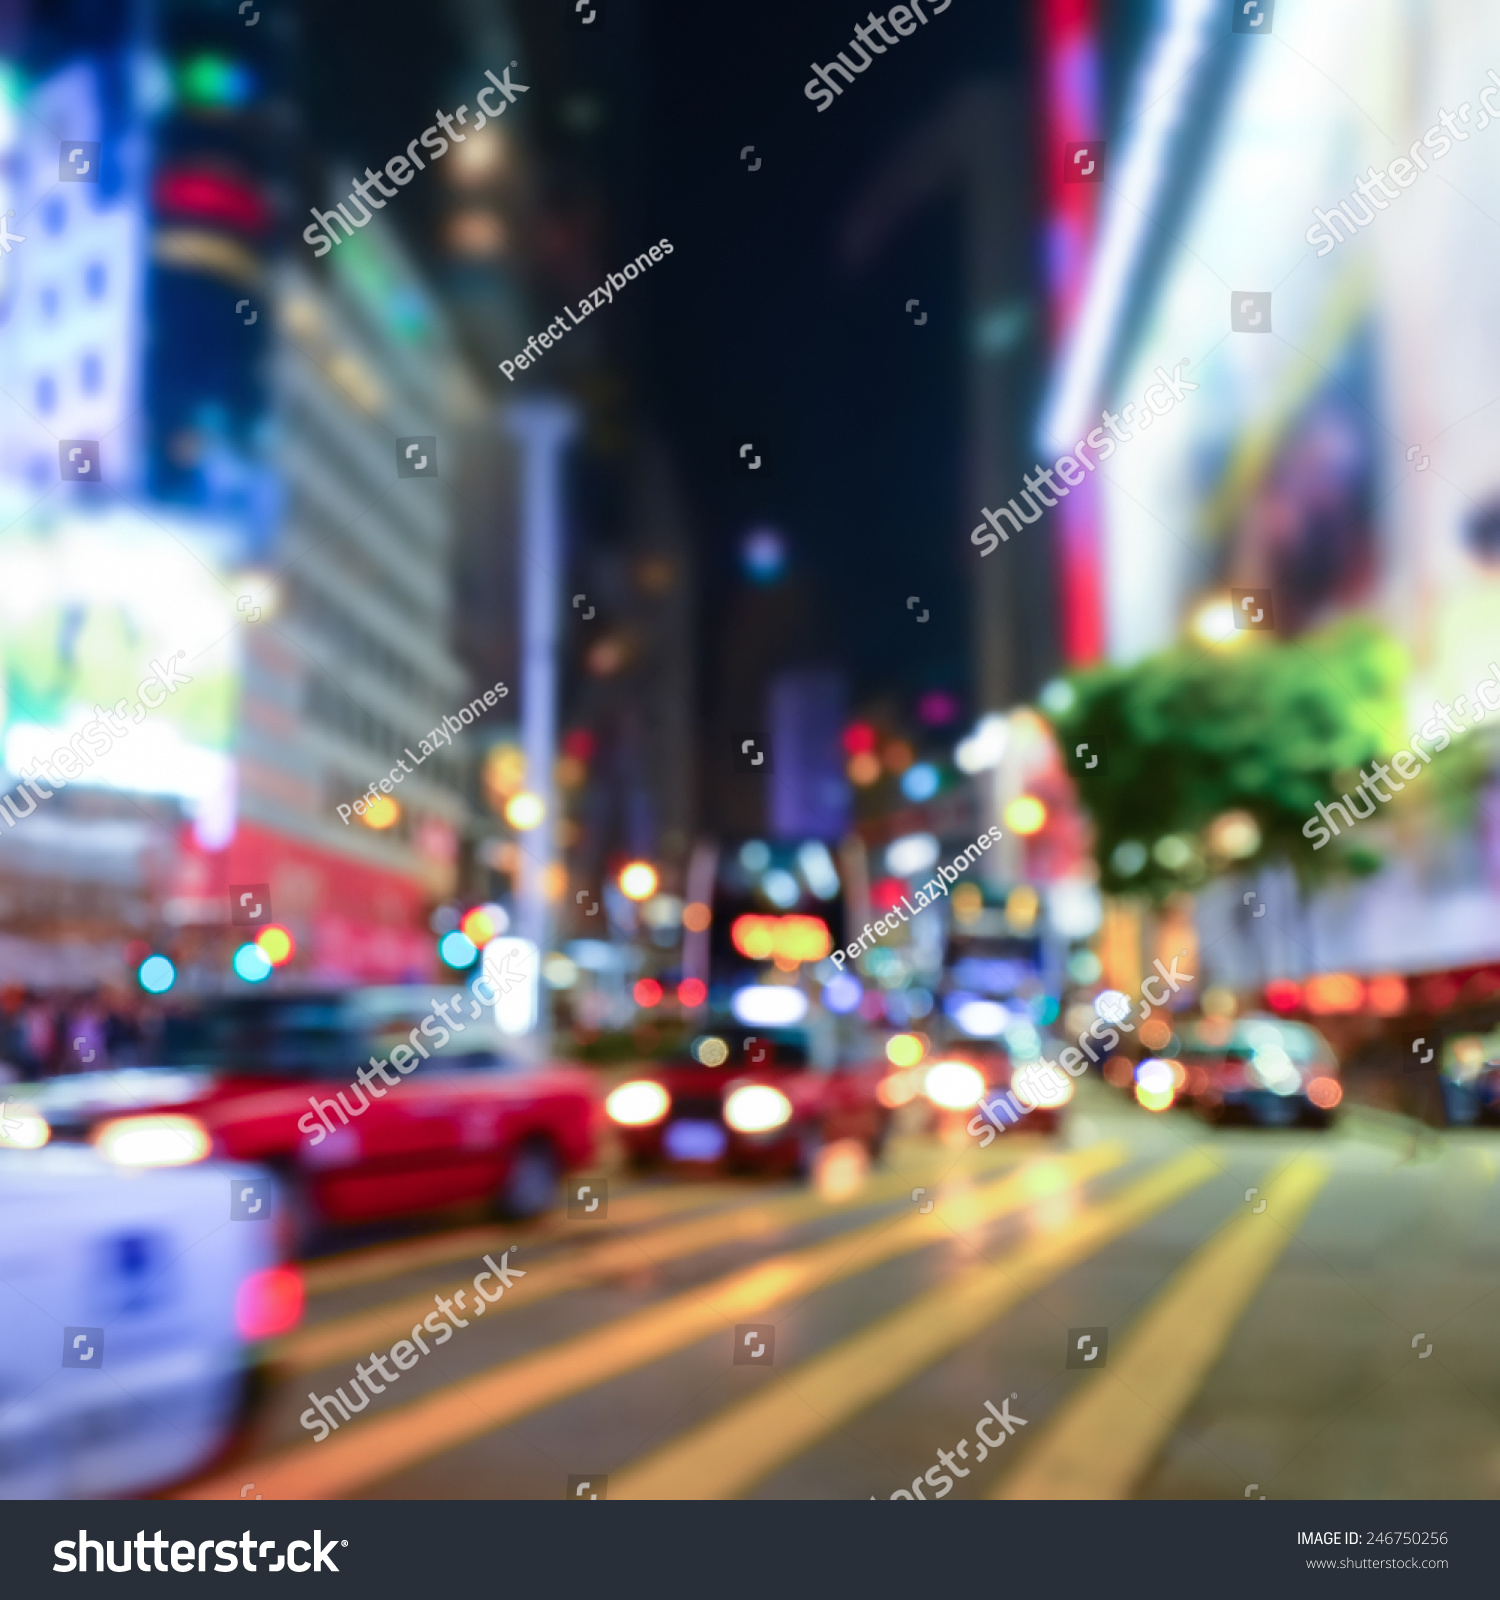 Abstract Cityscape Blurred Background Night View Stock